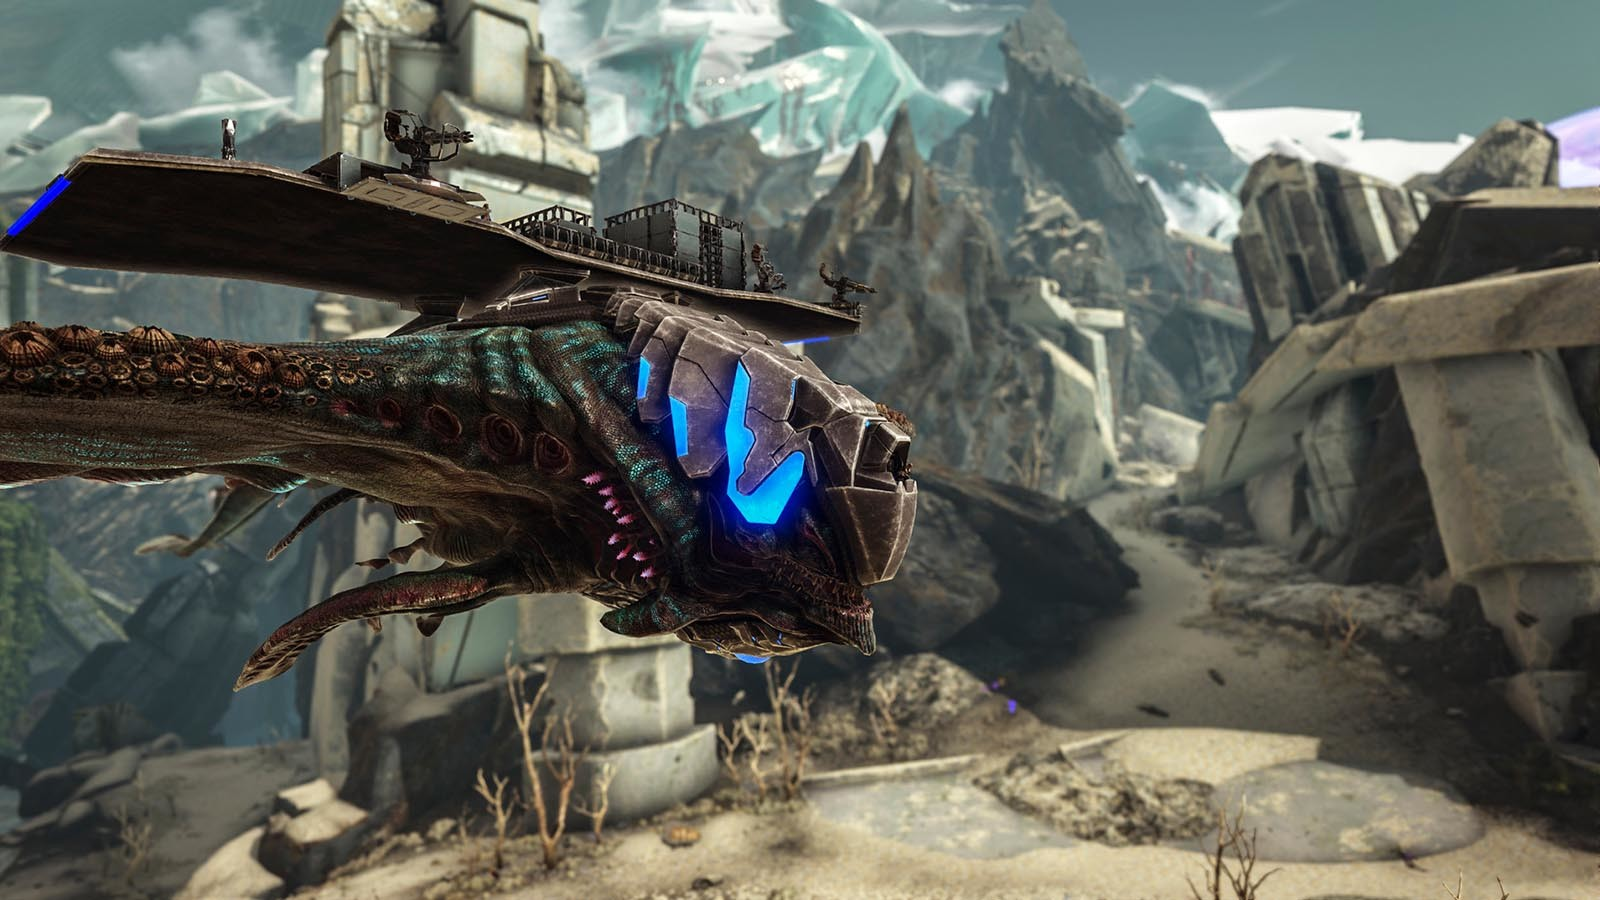 ARK: Extinction - Expansion Pack [Steam CD Key] for PC, Mac and Linux - Buy  now